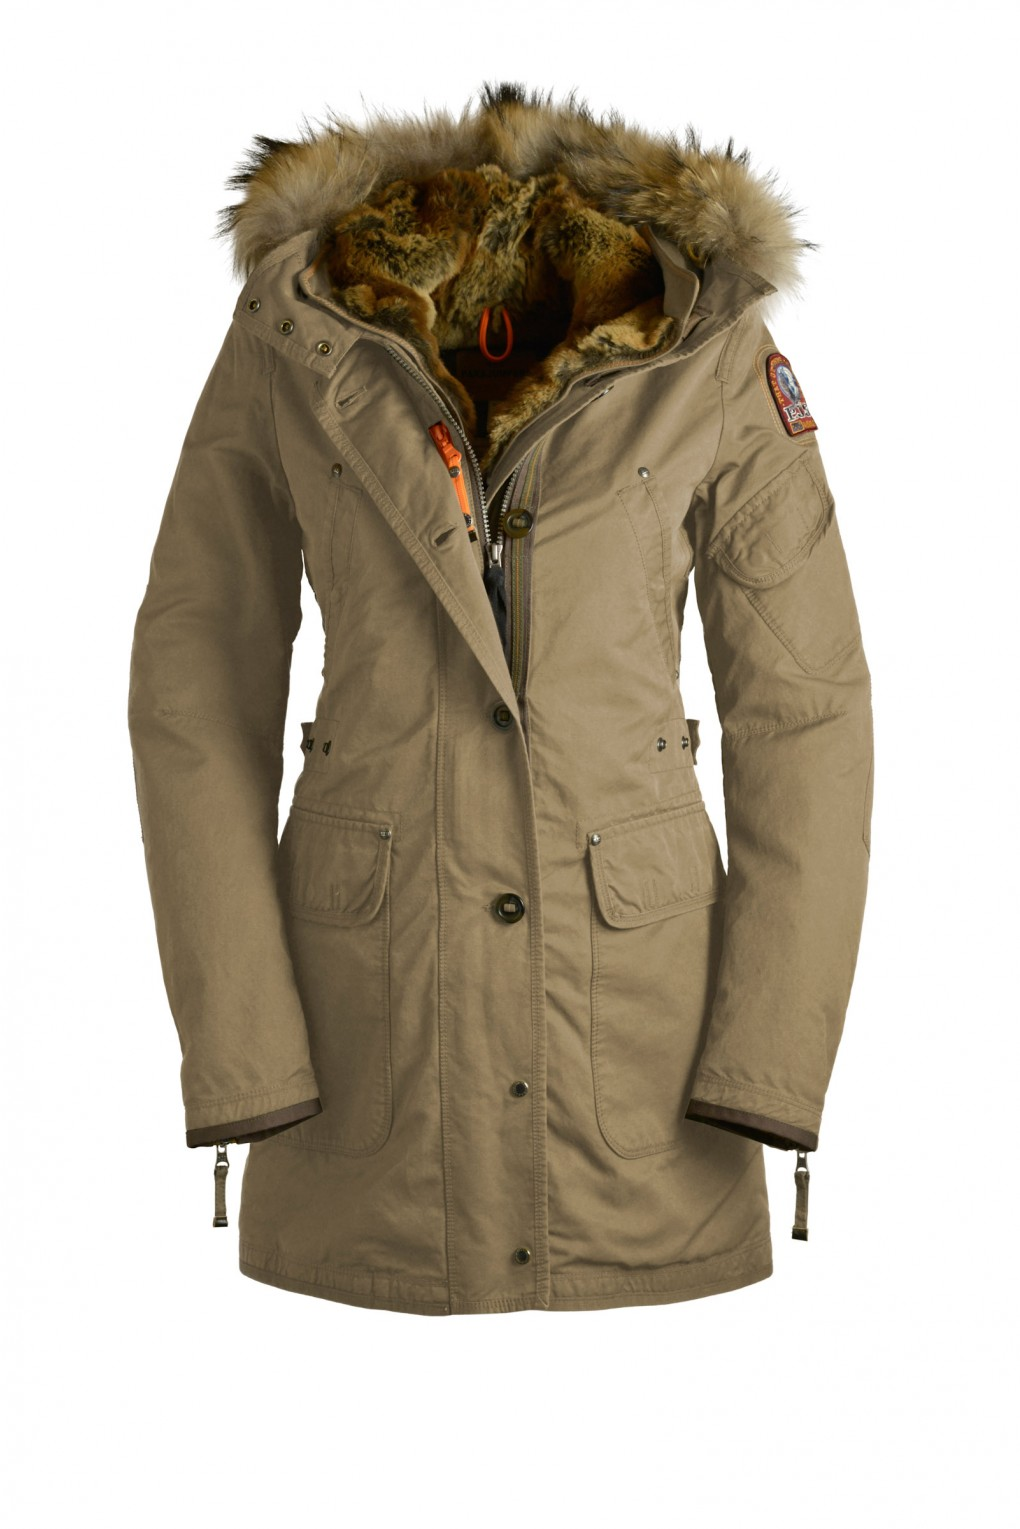 parajumpers NICOLE woman outerwear Sand